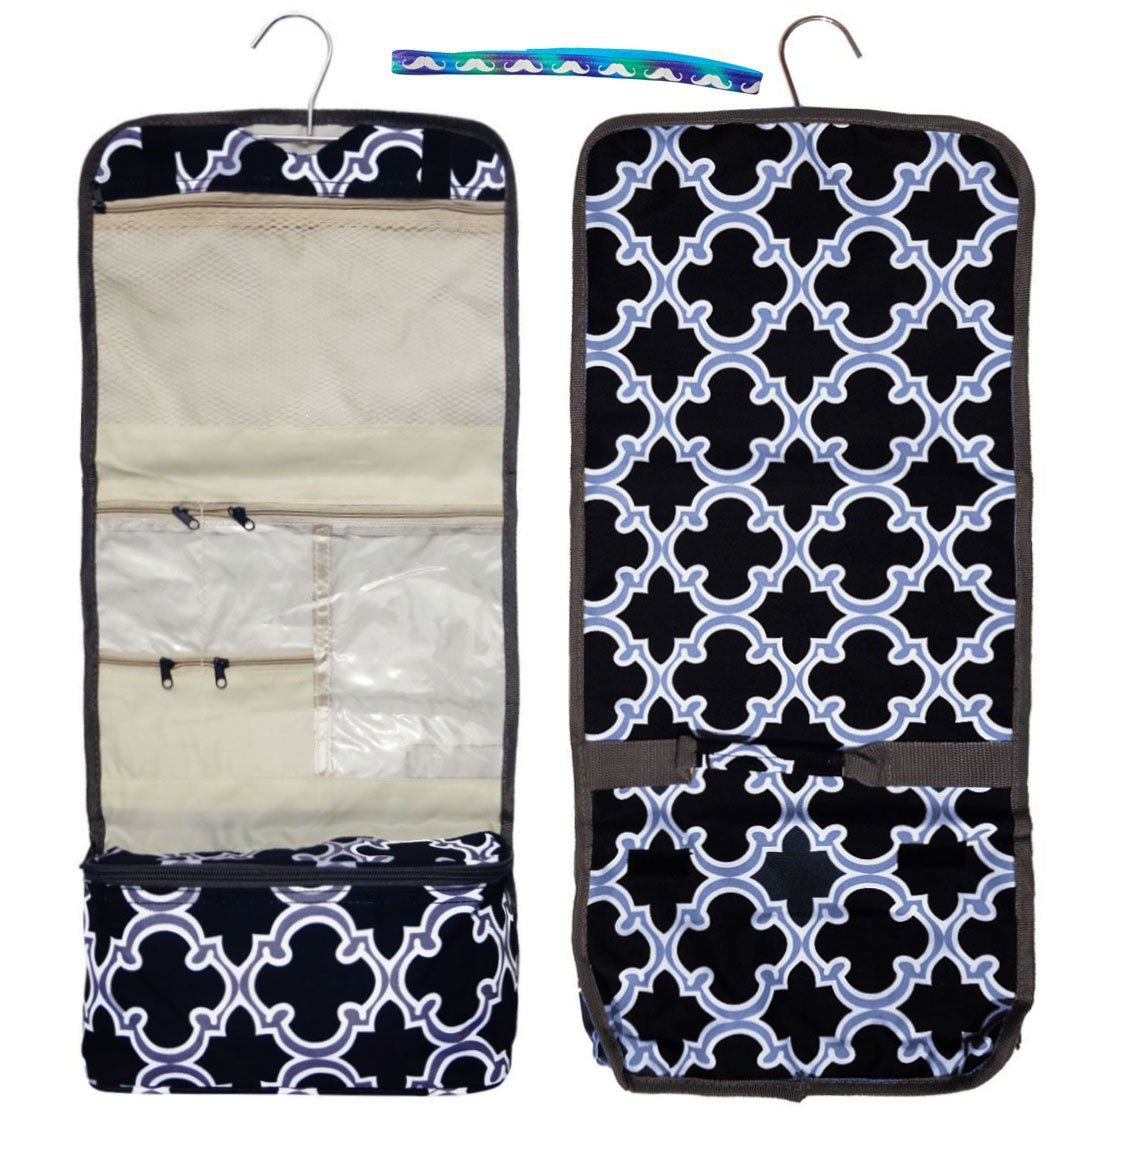 New Black Gray Quatrefoil Hanging Toiletry Makeup Cosmetic Travel Case Kit Bag Accessories Unique Cool Birthday Boys Summer Camp Supplies 2018 for Father Him Men Husband Brother Papa Son Boyfriend